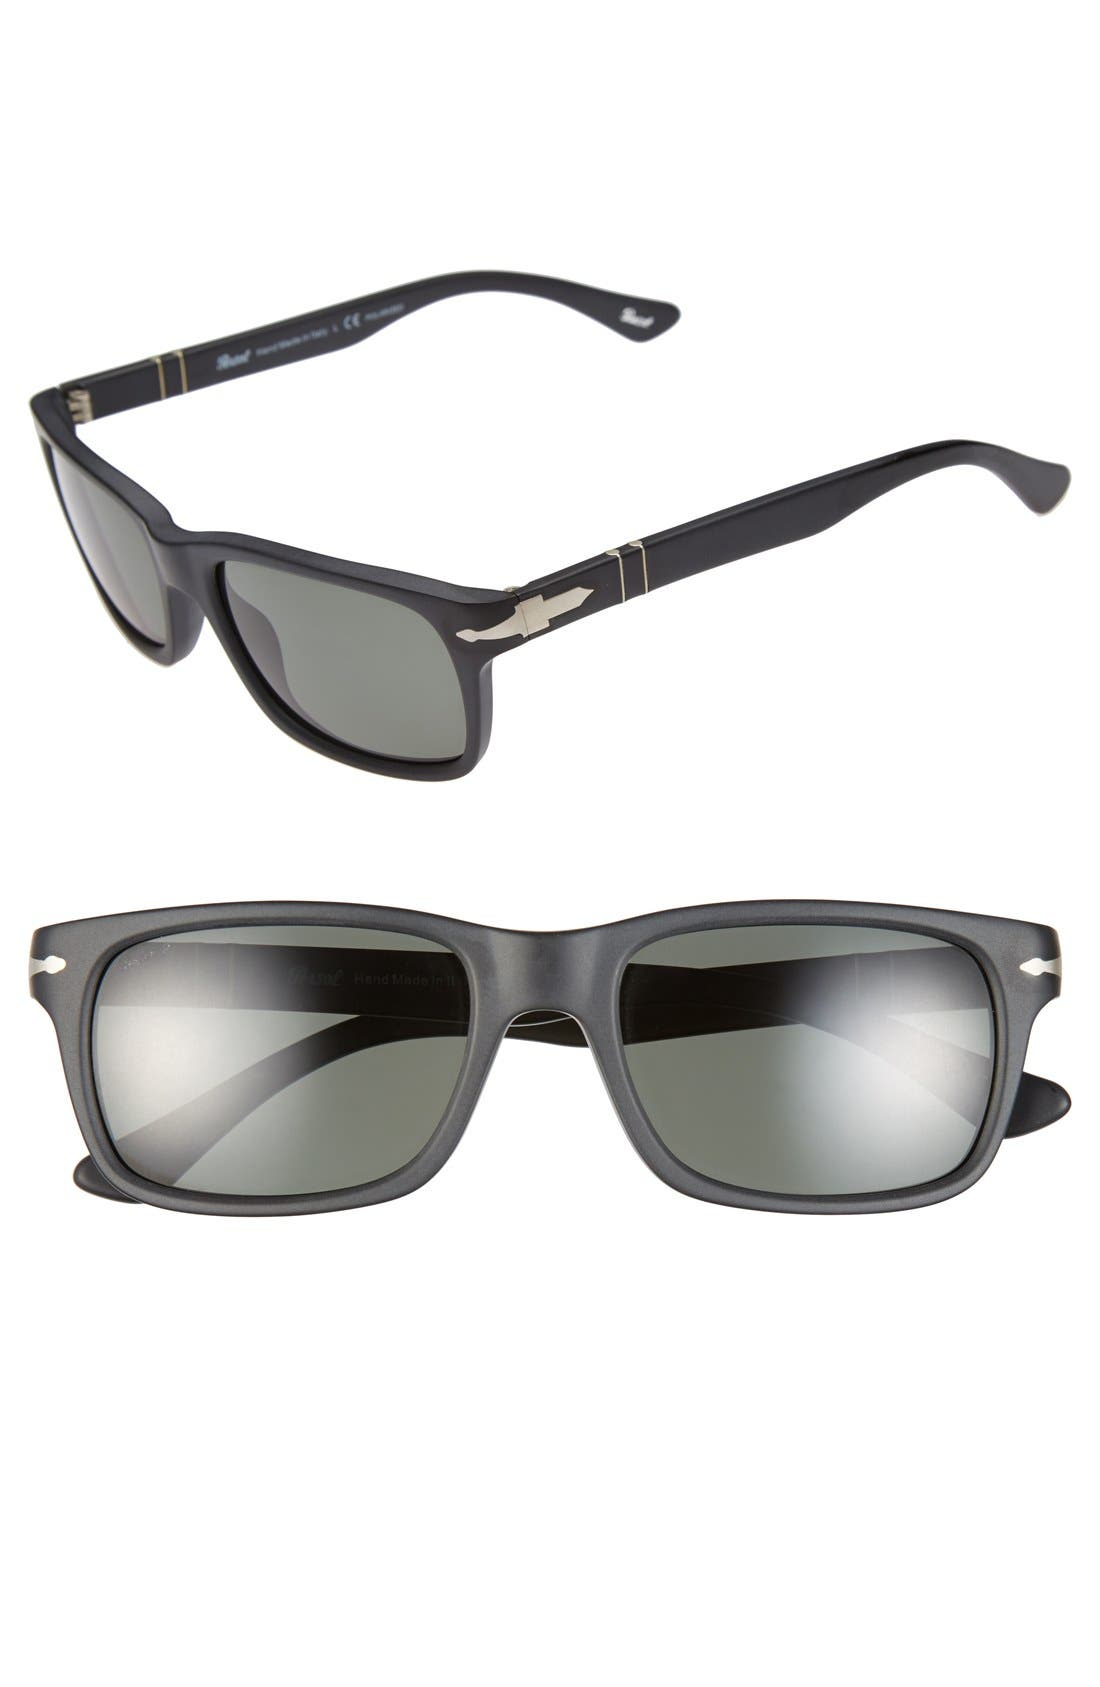 Main Image - Persol 'Suprema' 55mm Polarized Sunglasses